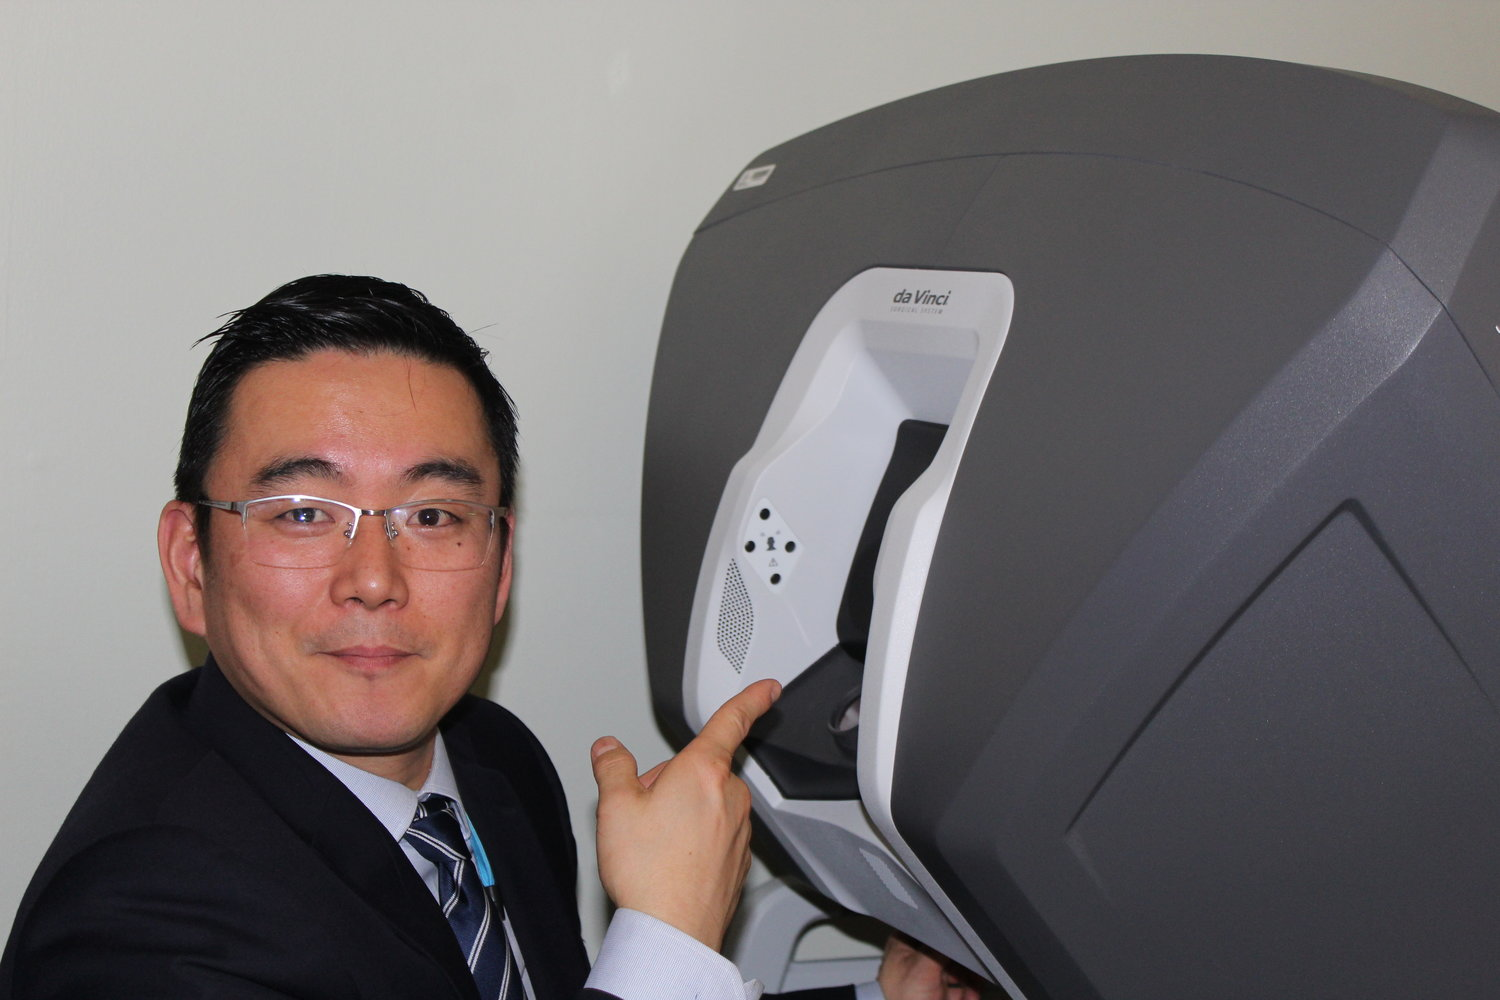 Dr. Gainosuke Sugiyama, chief of surgery at LIJ Valley Stream with the latest in the DaVinci series of robotic surgeons. The hospital was named a Center of Excellence in both the fields of robotic and hernia surgery by an independent patient safety organization.